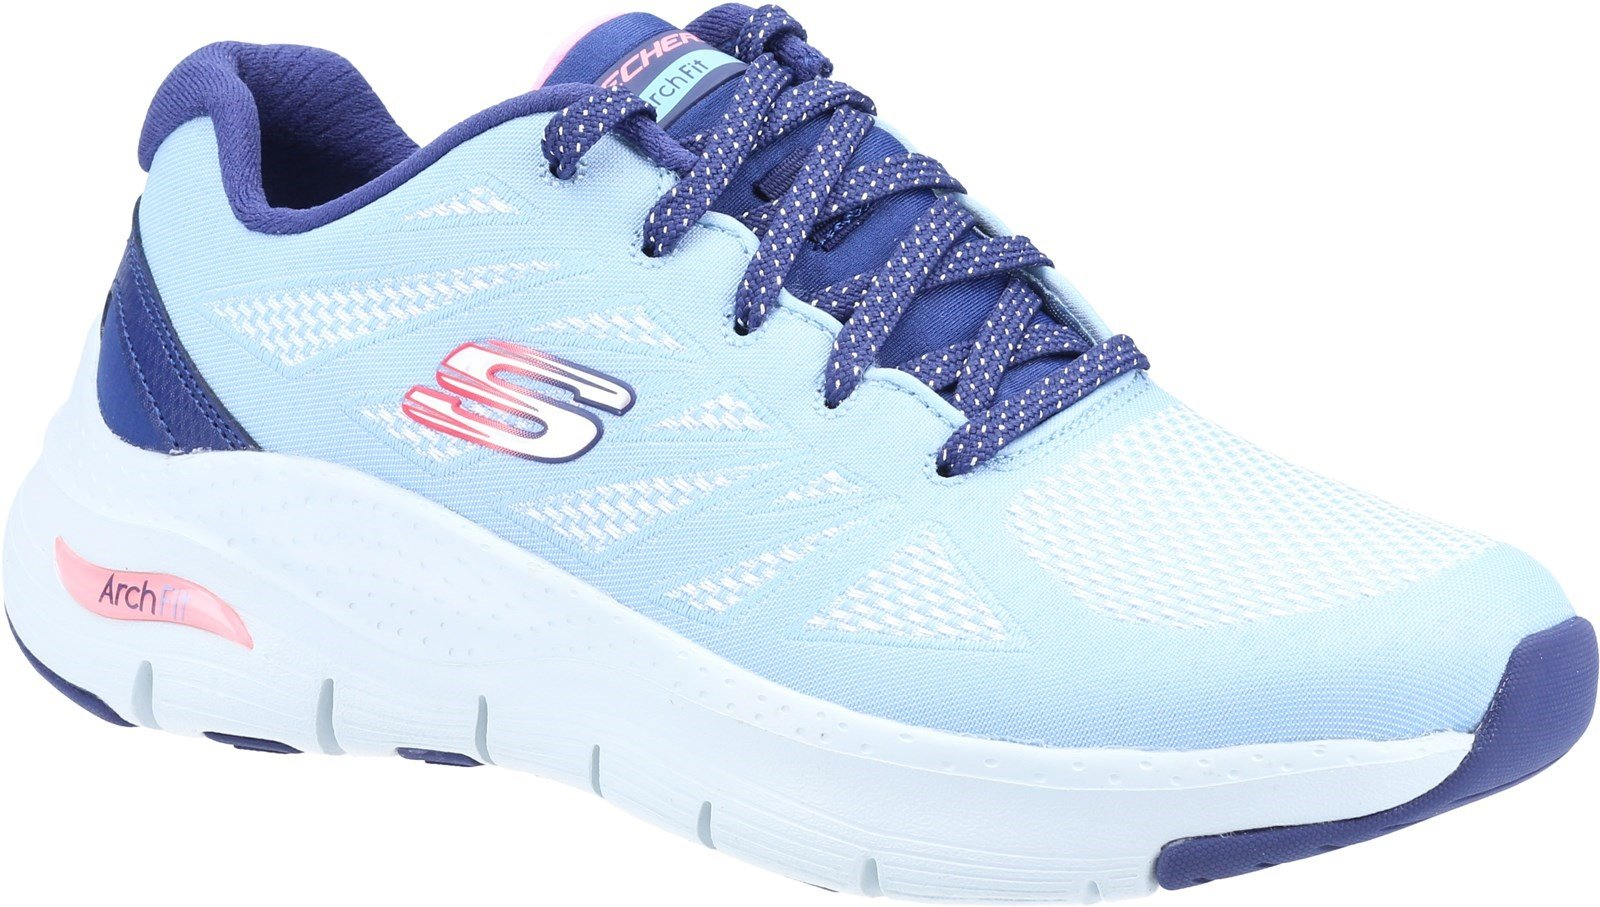 Skechers Women's Arch Fit She's Effortless Trainer Various Colours 32107 - Light Blue/Navy 3